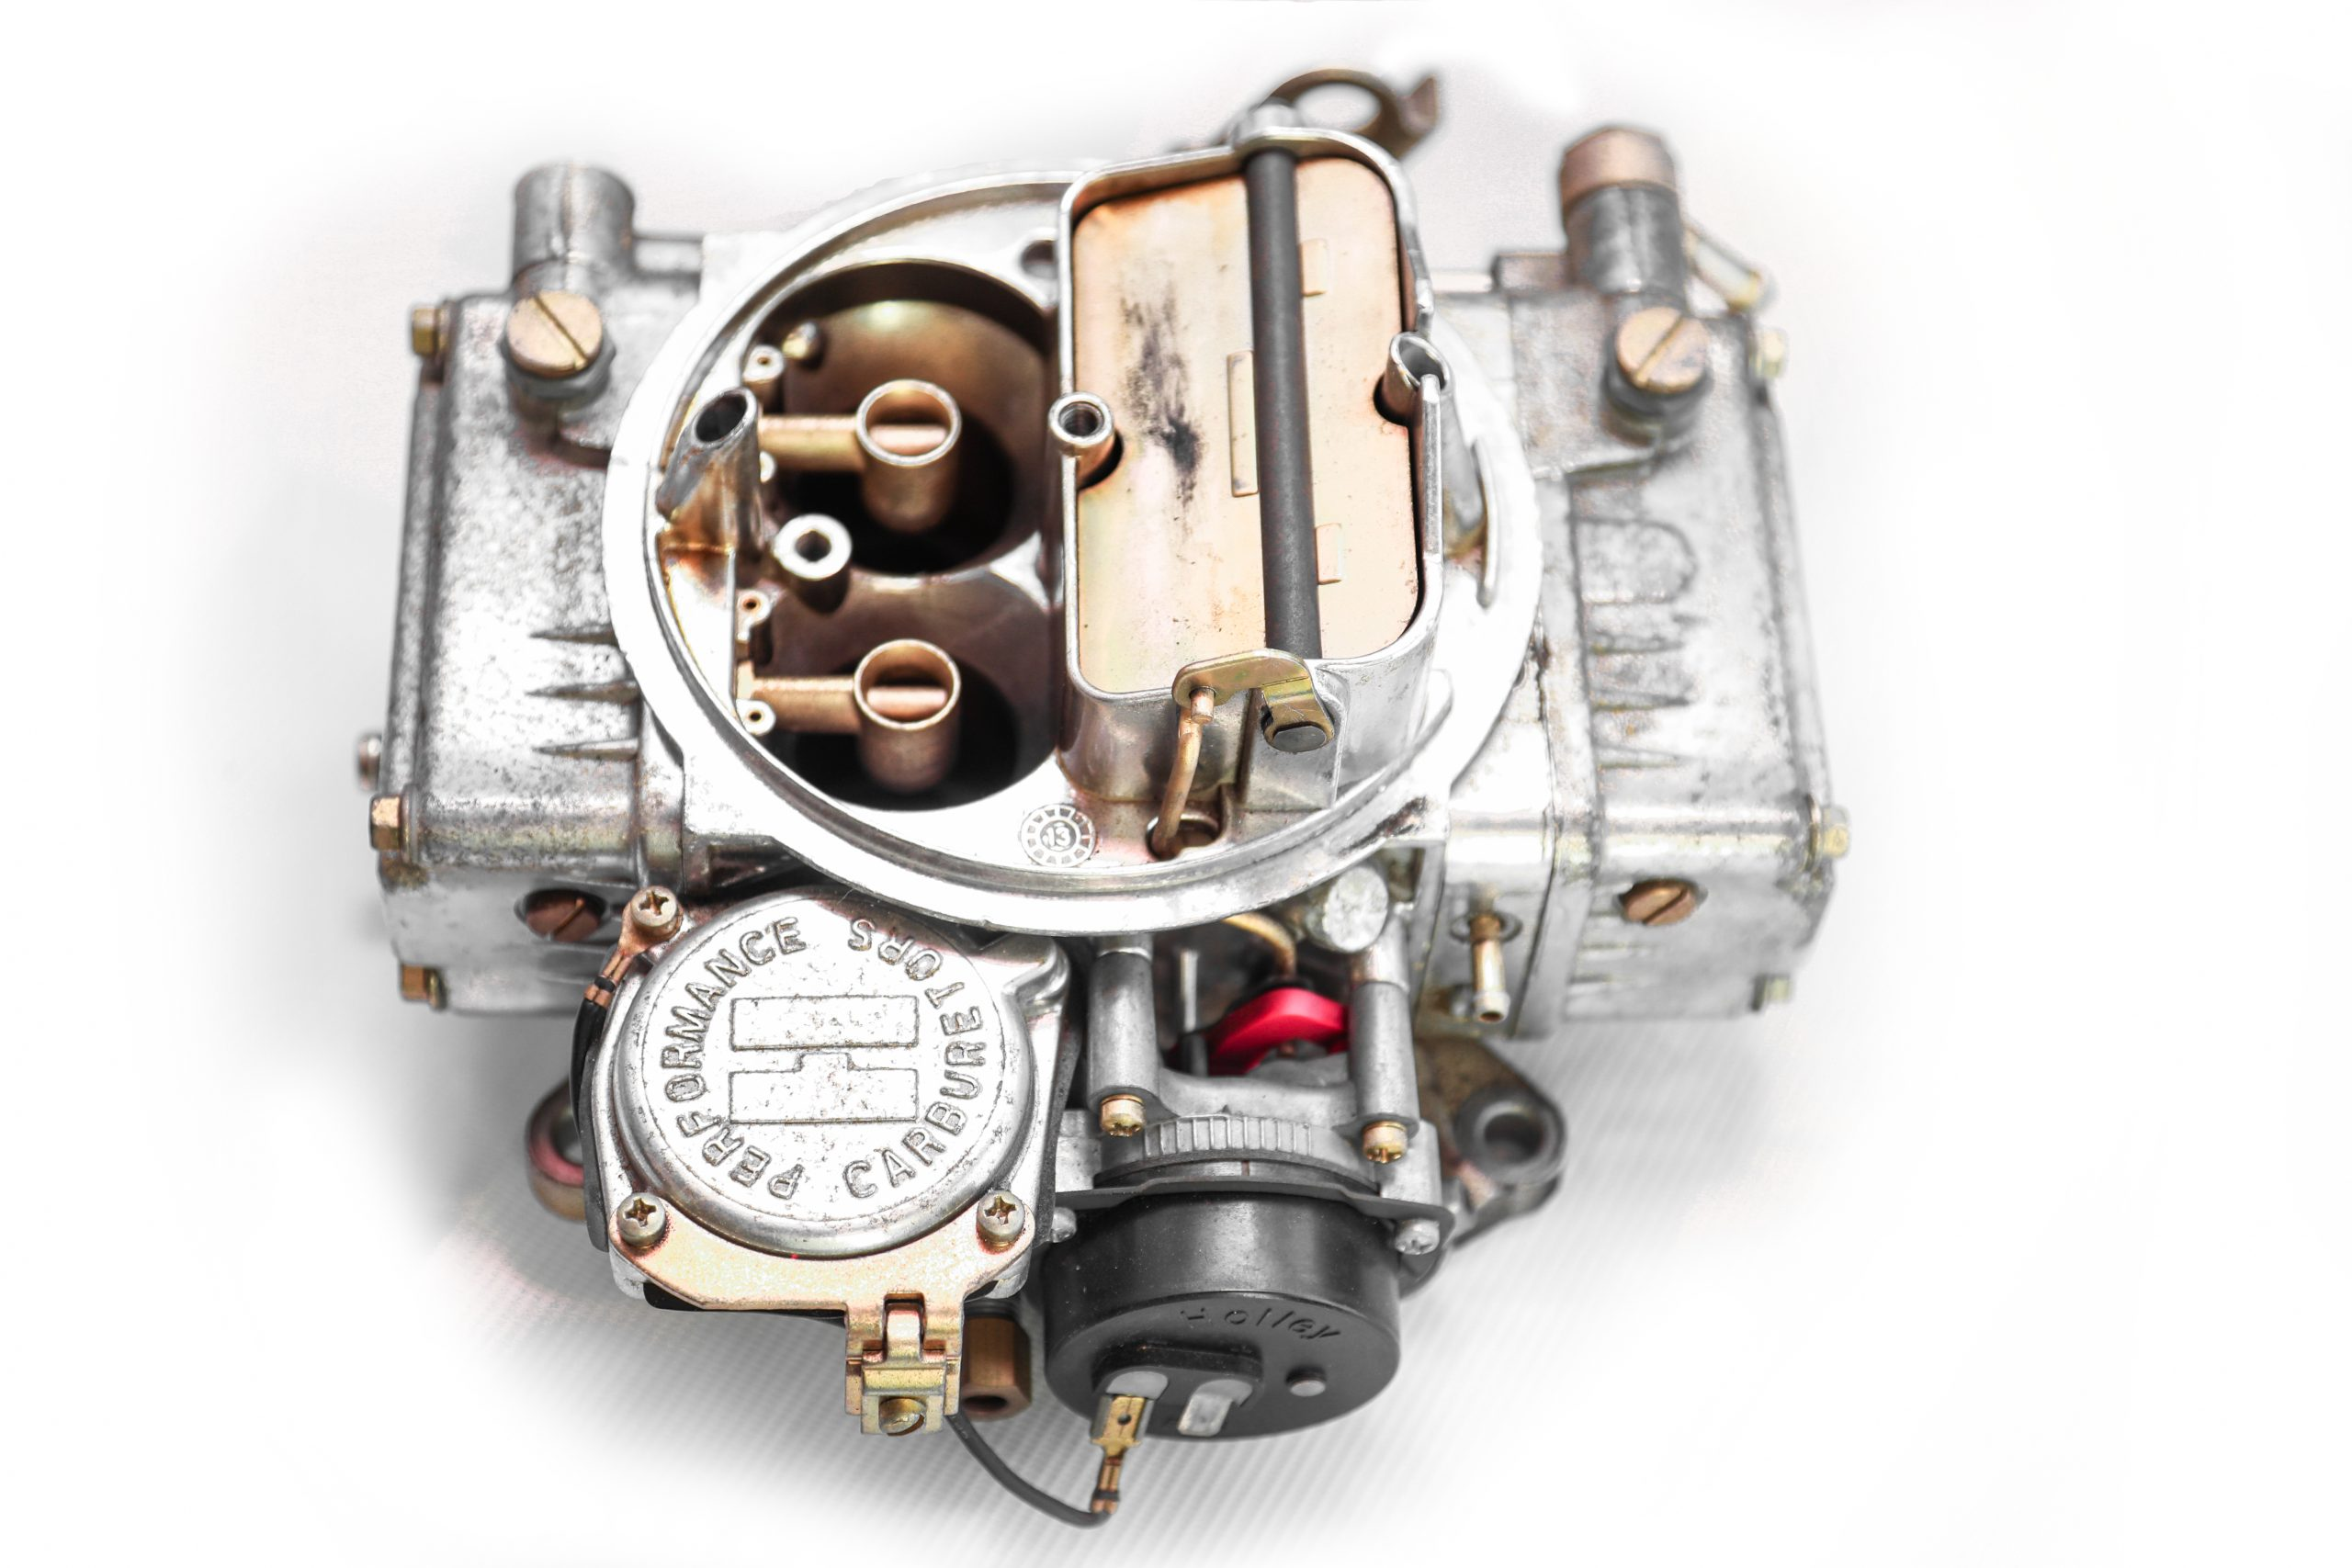 Holley 3310 carburetor